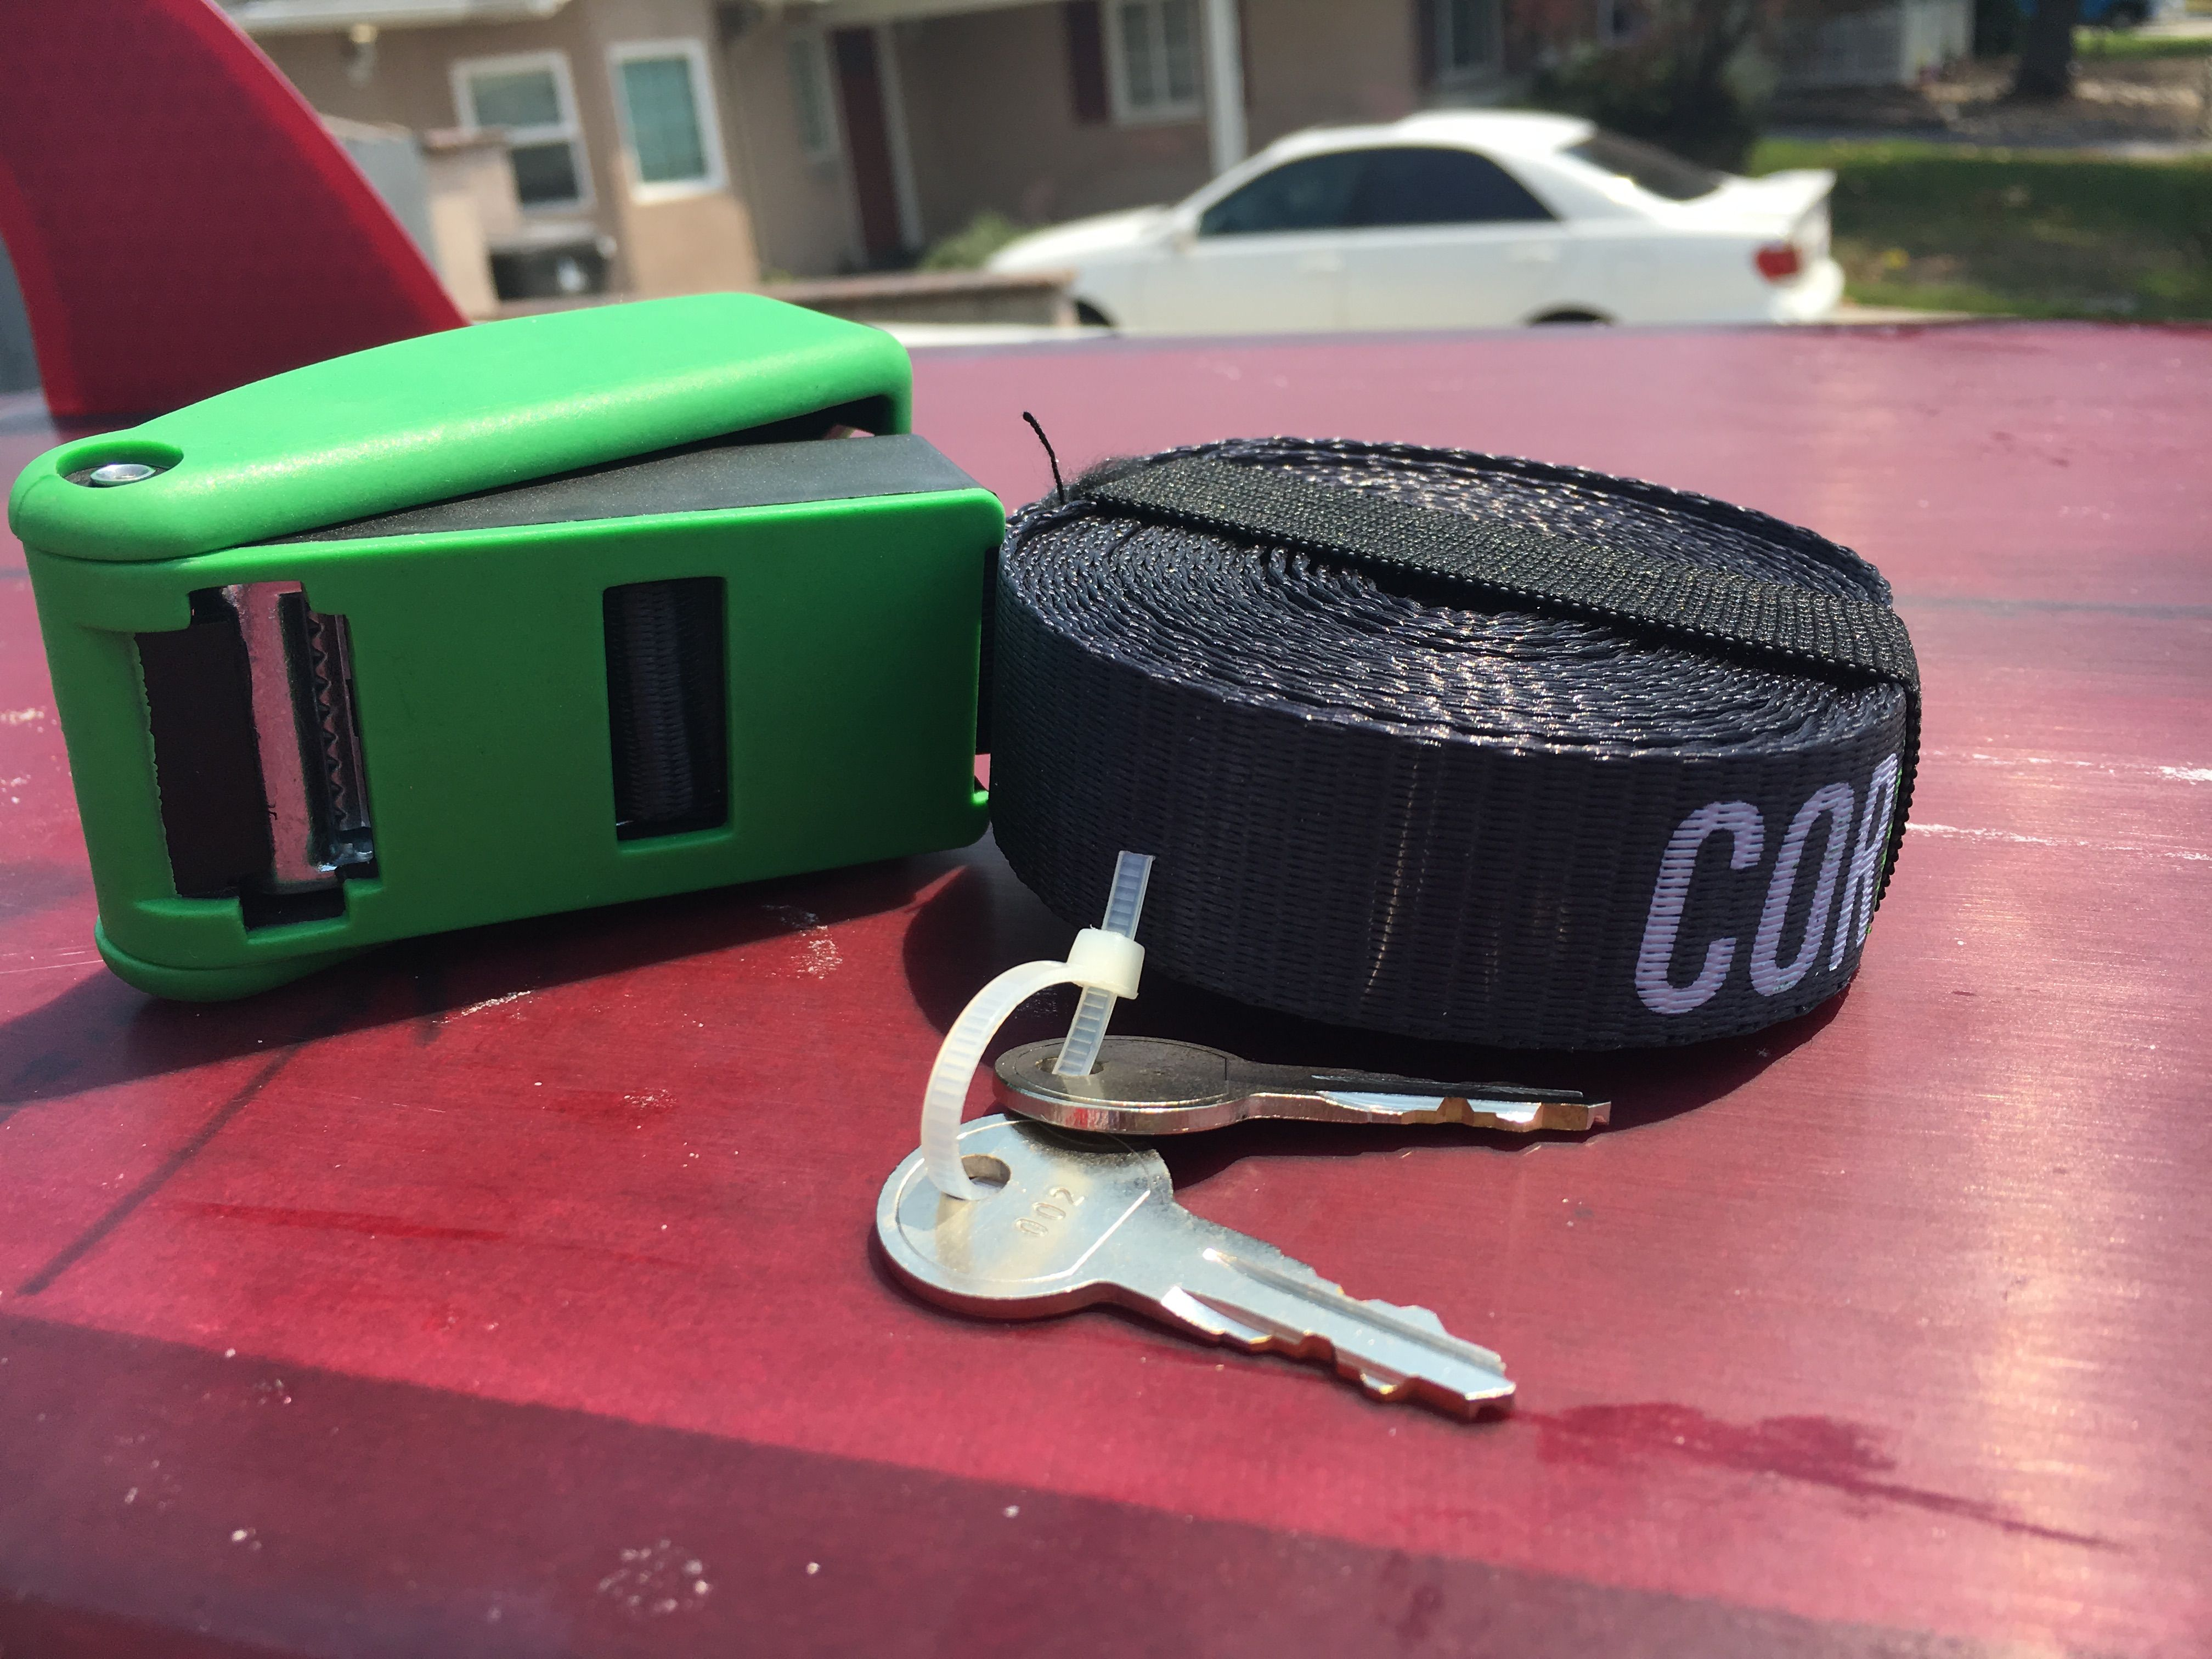 Cor surf locking tie down strap 15ft of solid strap that